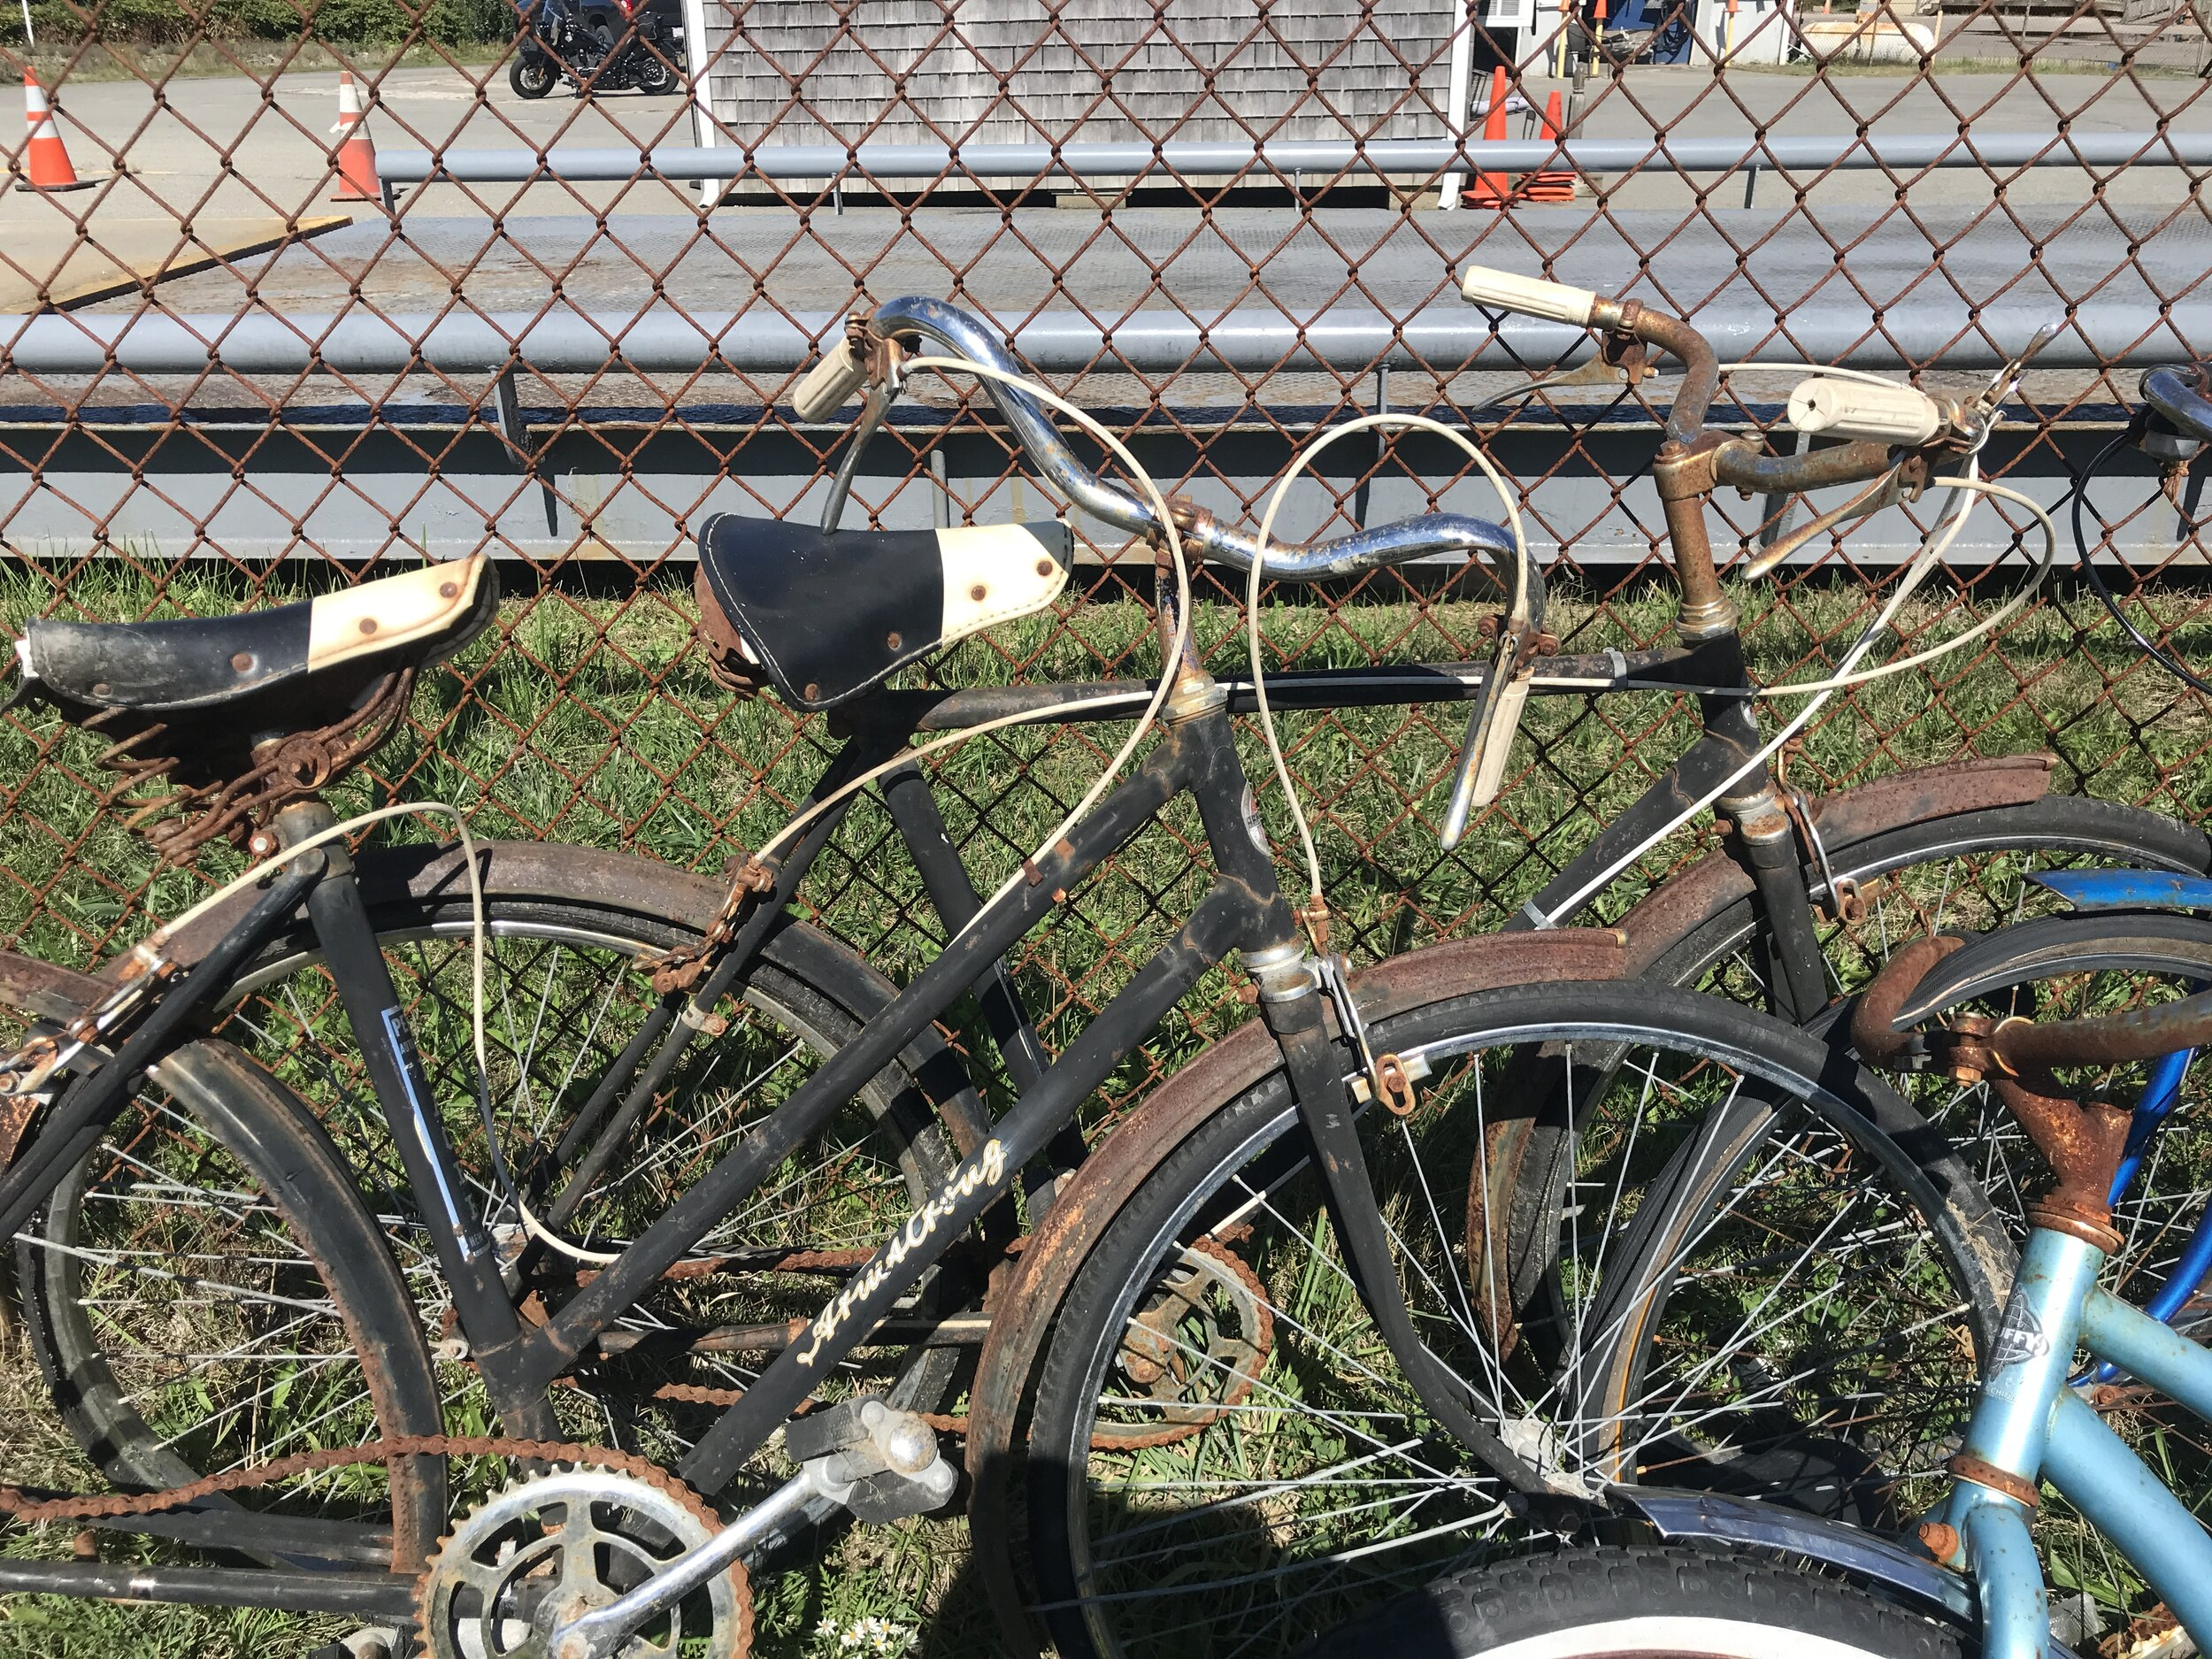 A matching pair of rusty vintage 1960s Armstrong 3-speed bikes at the Provincetown dump.